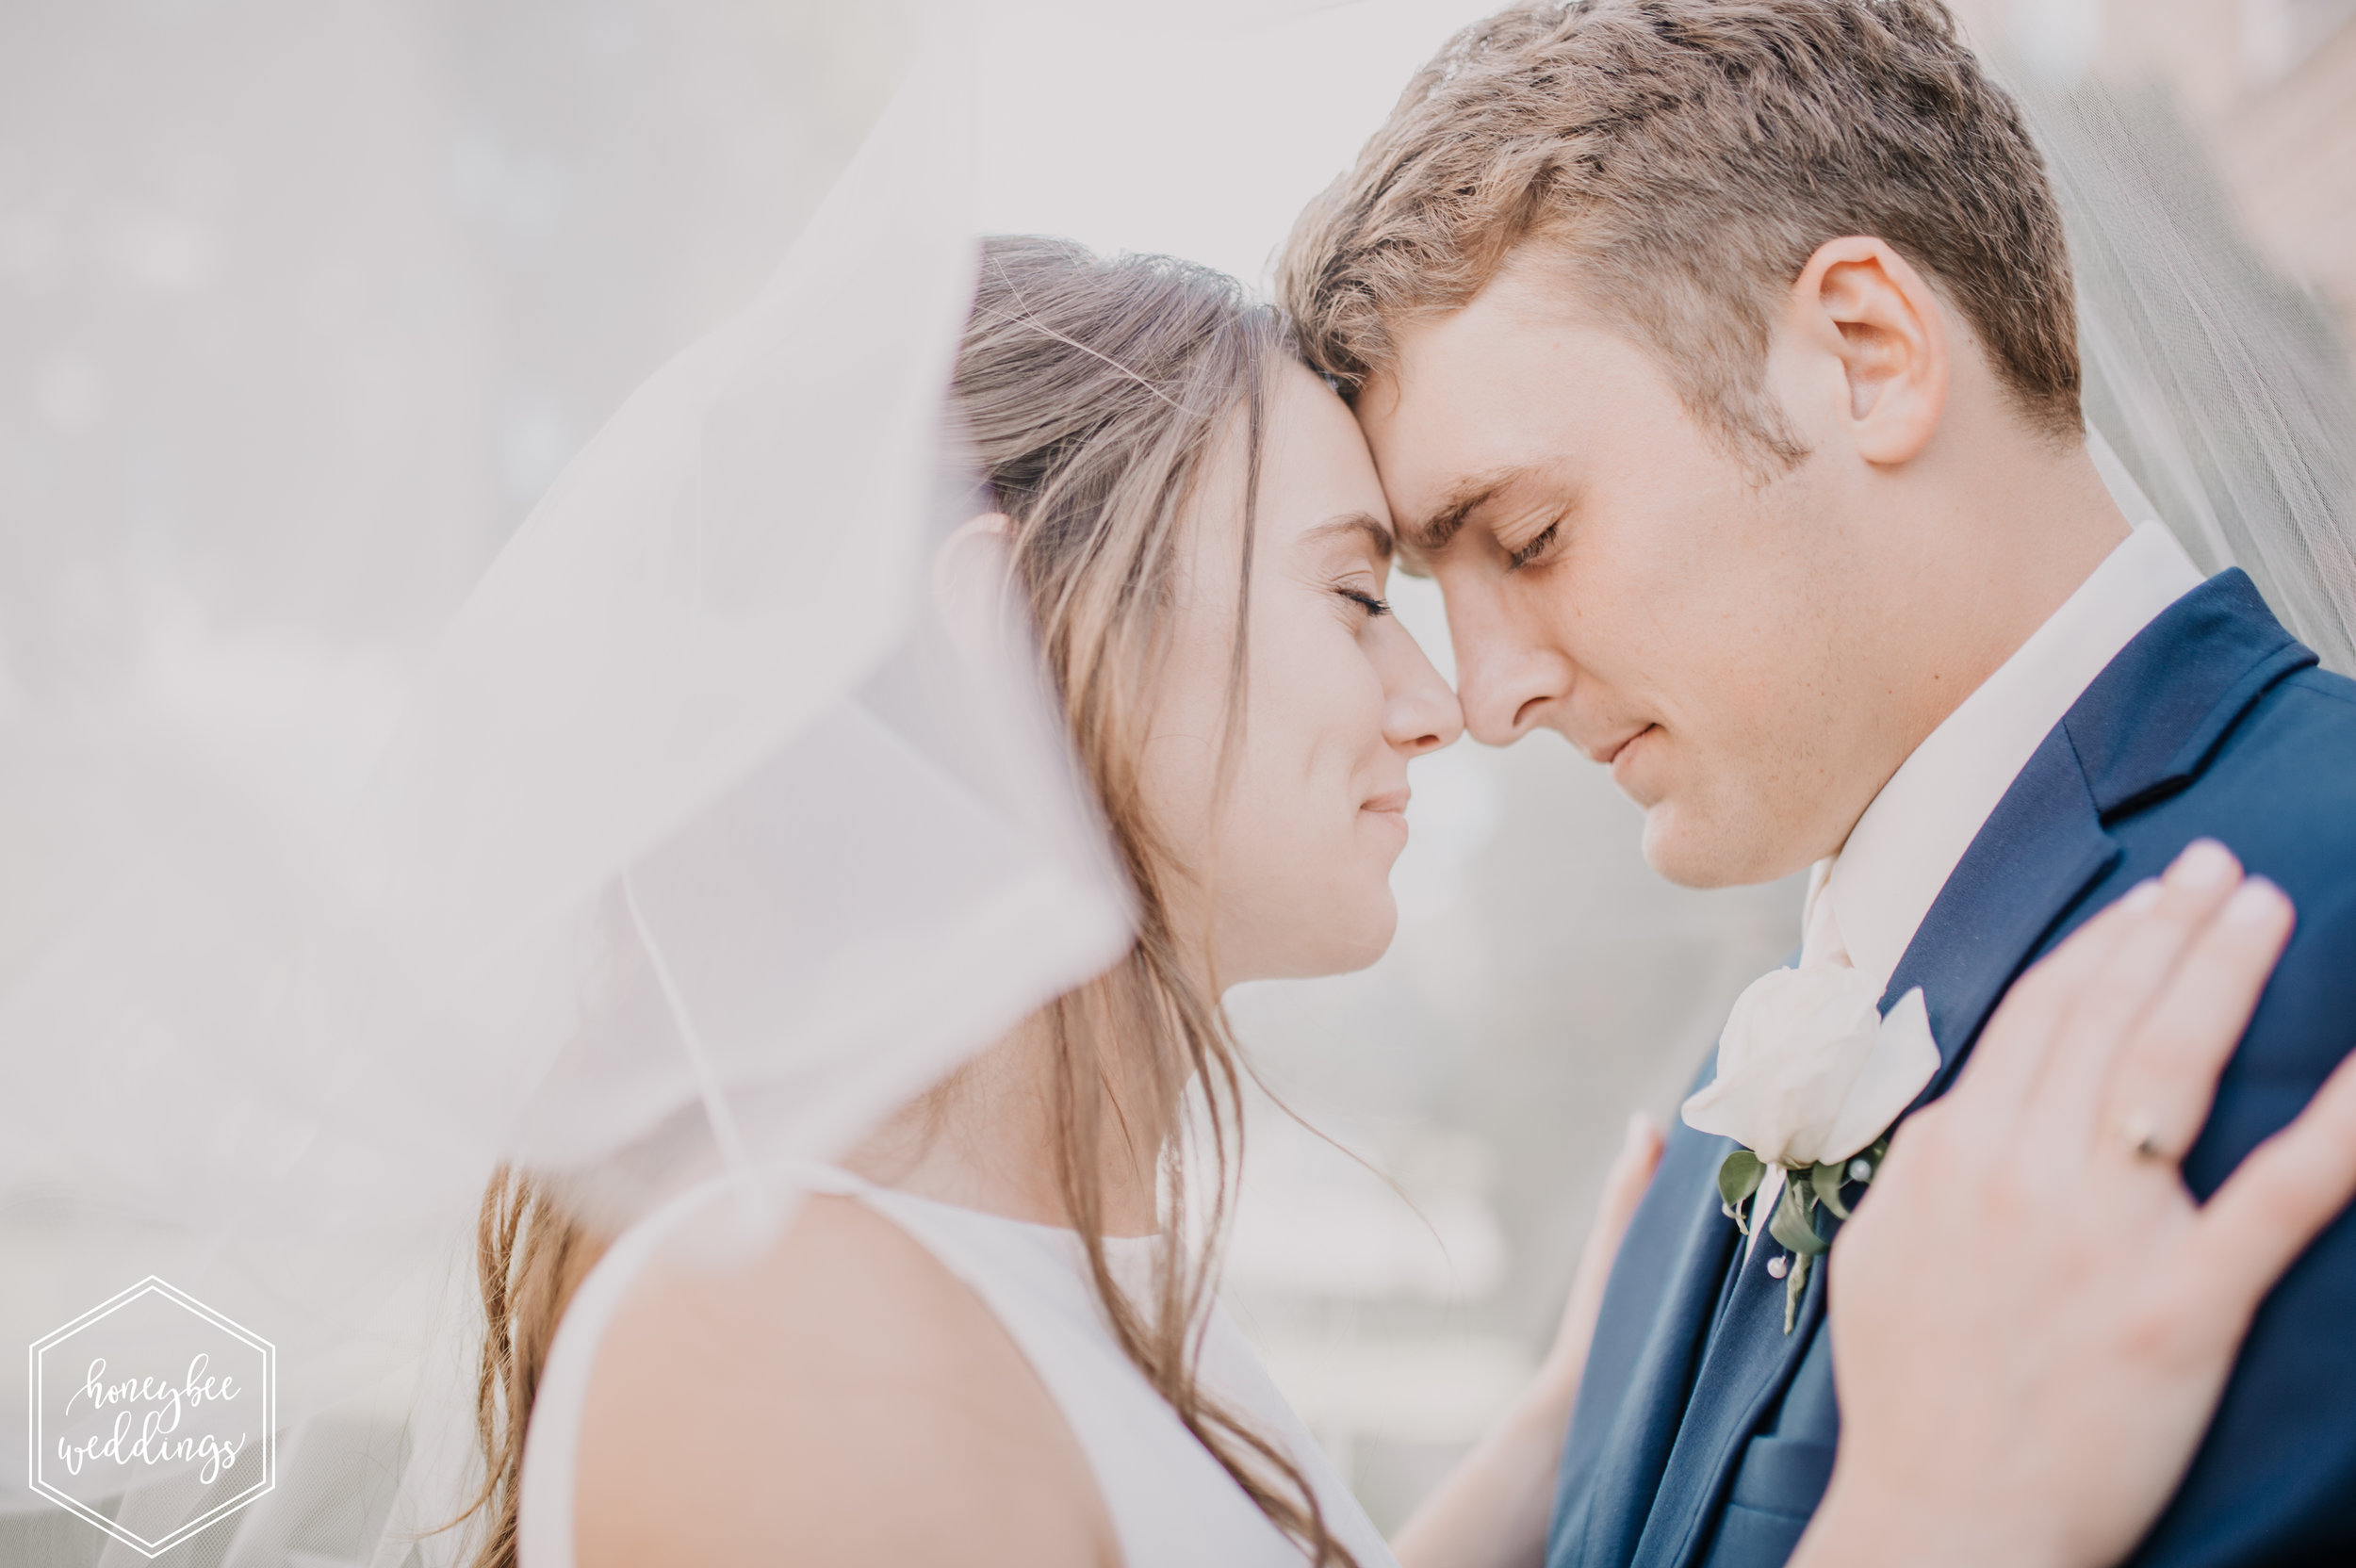 232 Montana Wedding Photographer_St. Francis Wedding_Tifani Zanto + Ryan Burke -6882.jpg